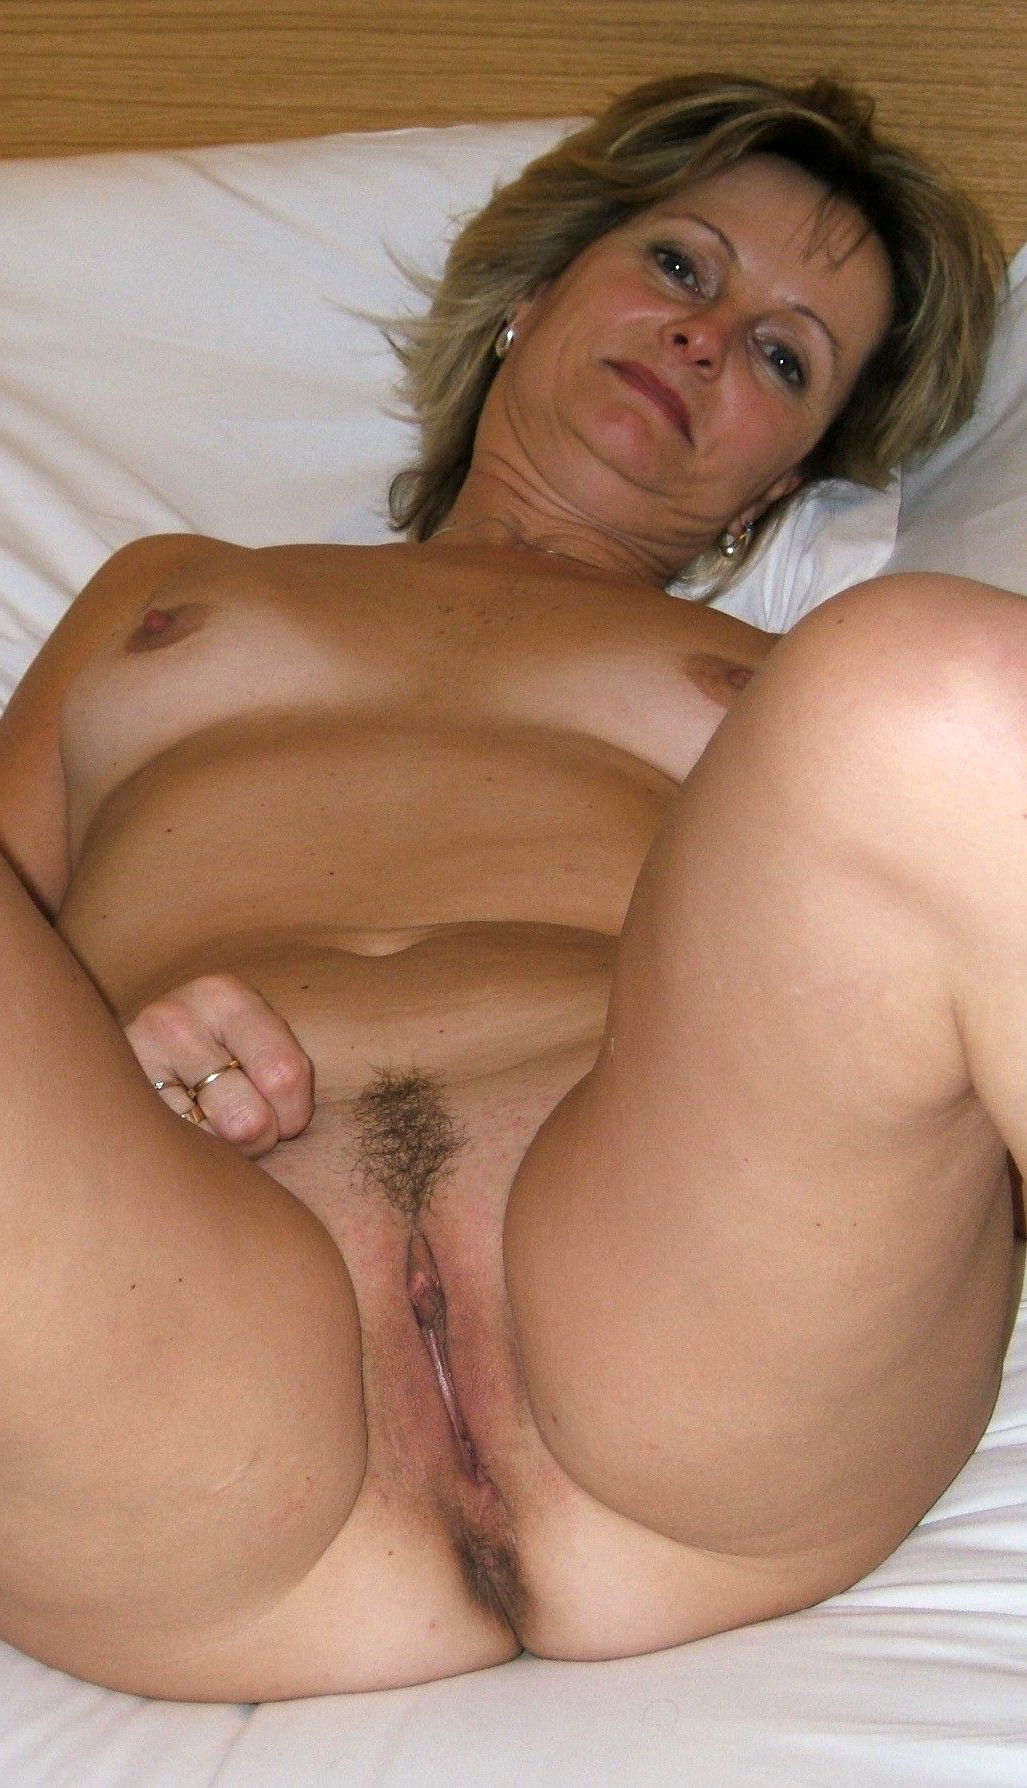 Mature amature women pictures